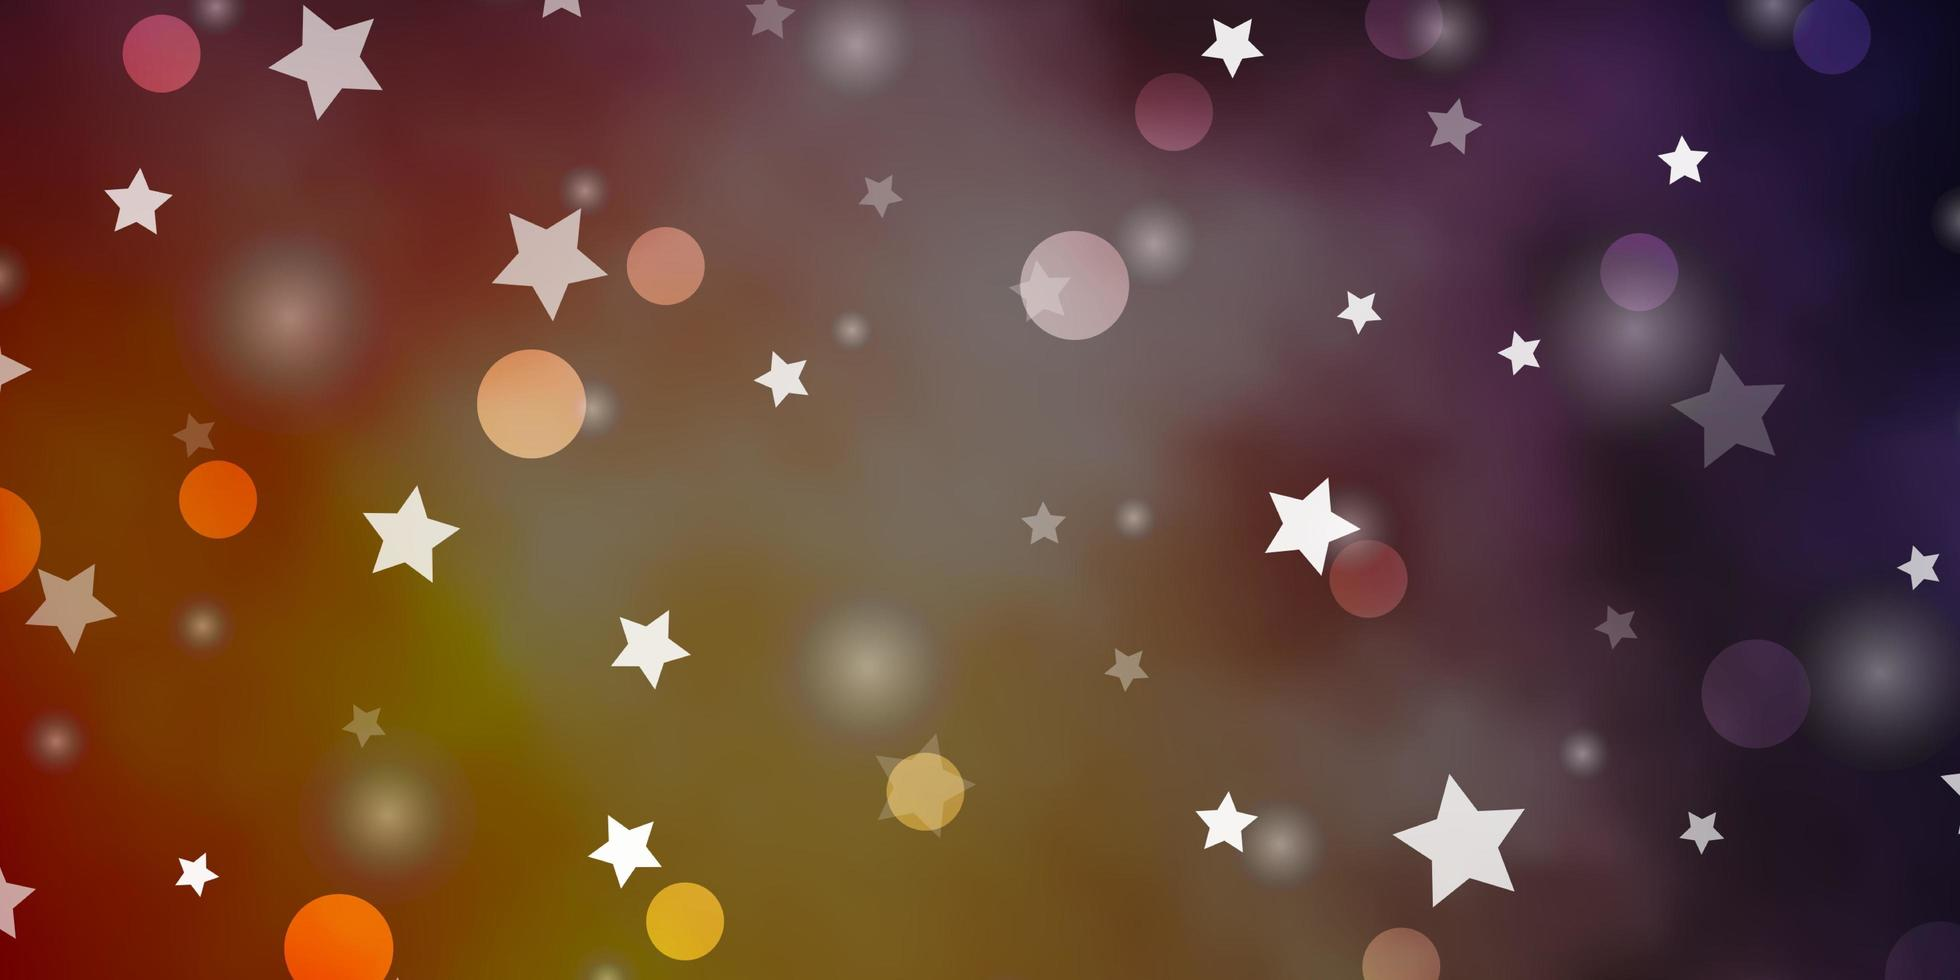 Red, Yellow texture with circles, stars. vector